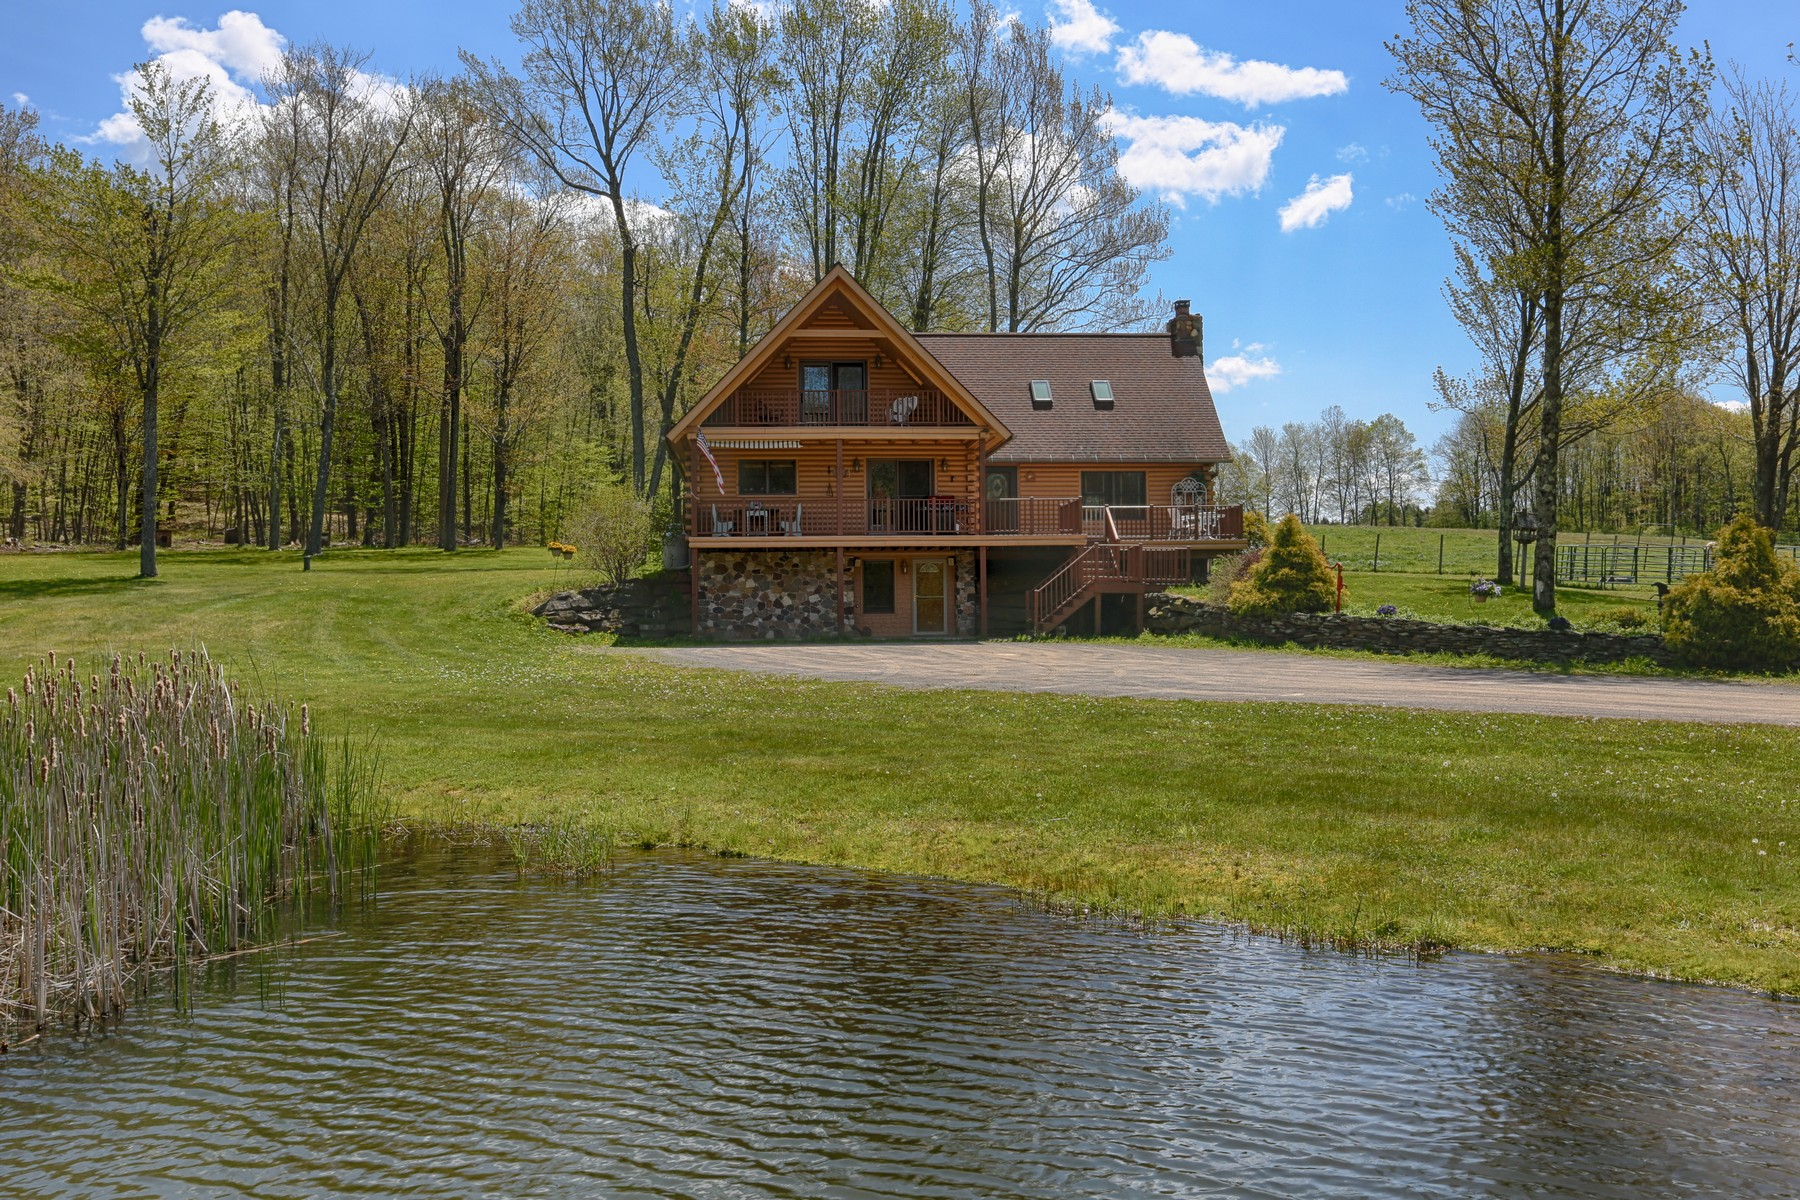 Single Family Home for Sale at Secluded Gentleman's Farm 1206 Flax Island Rd Otsego, New York 13825 United States